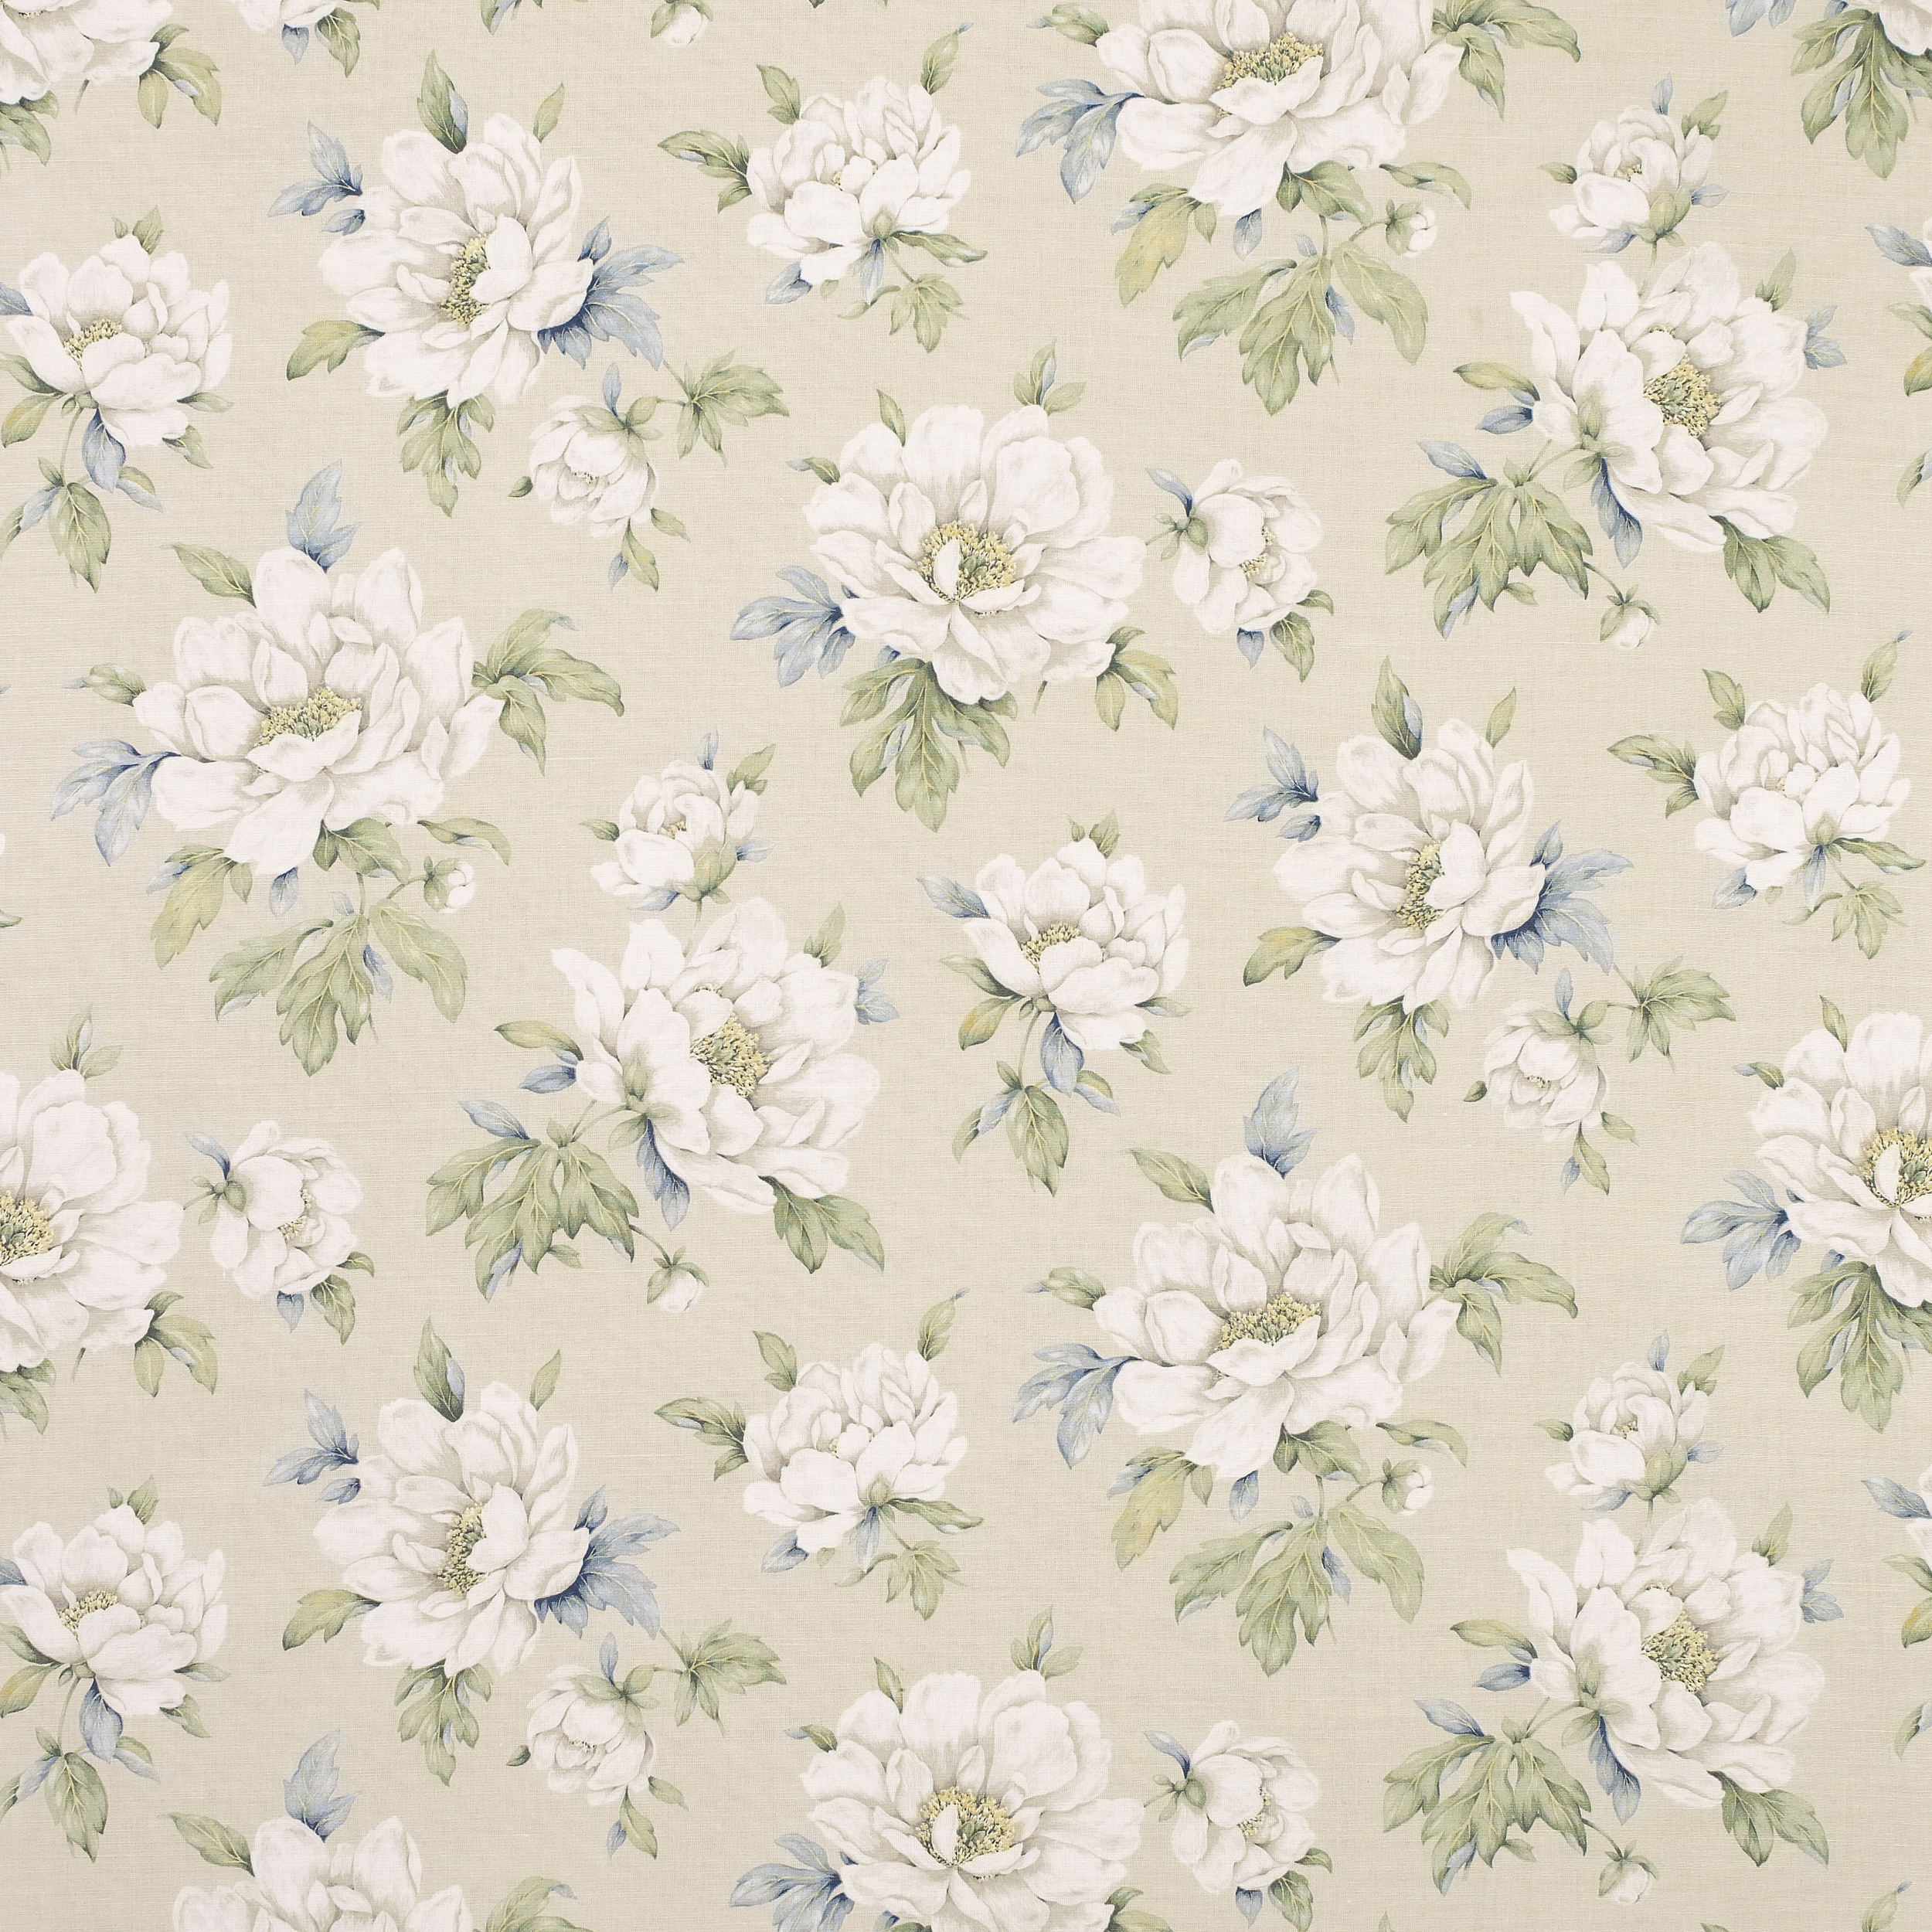 Wisley Natural Floral Linencotton Curtain Fabric Cotton Pertaining To Natural Fabric Curtain (Image 15 of 15)